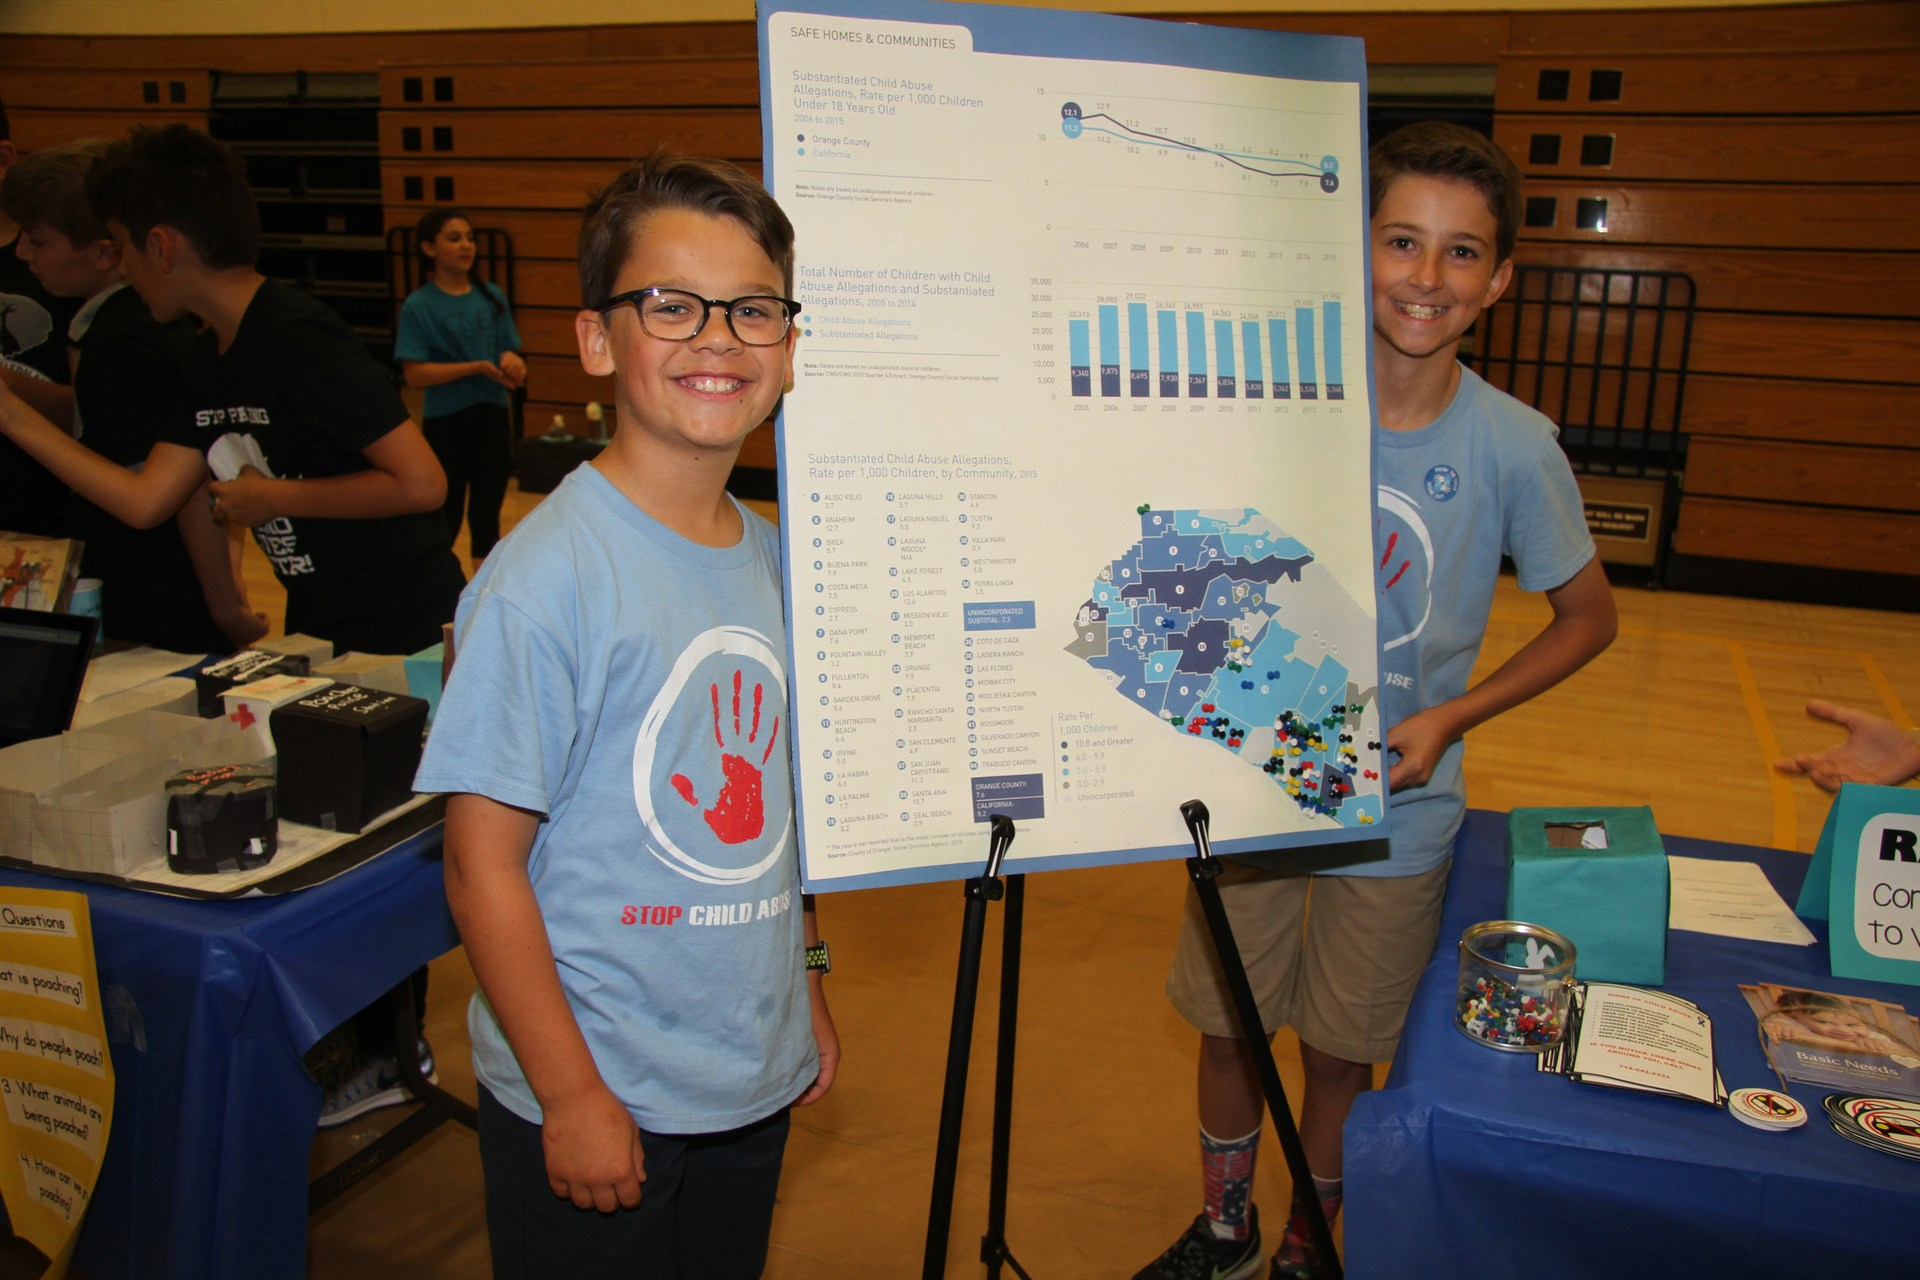 Two 5th grade boys with chart to share at expo